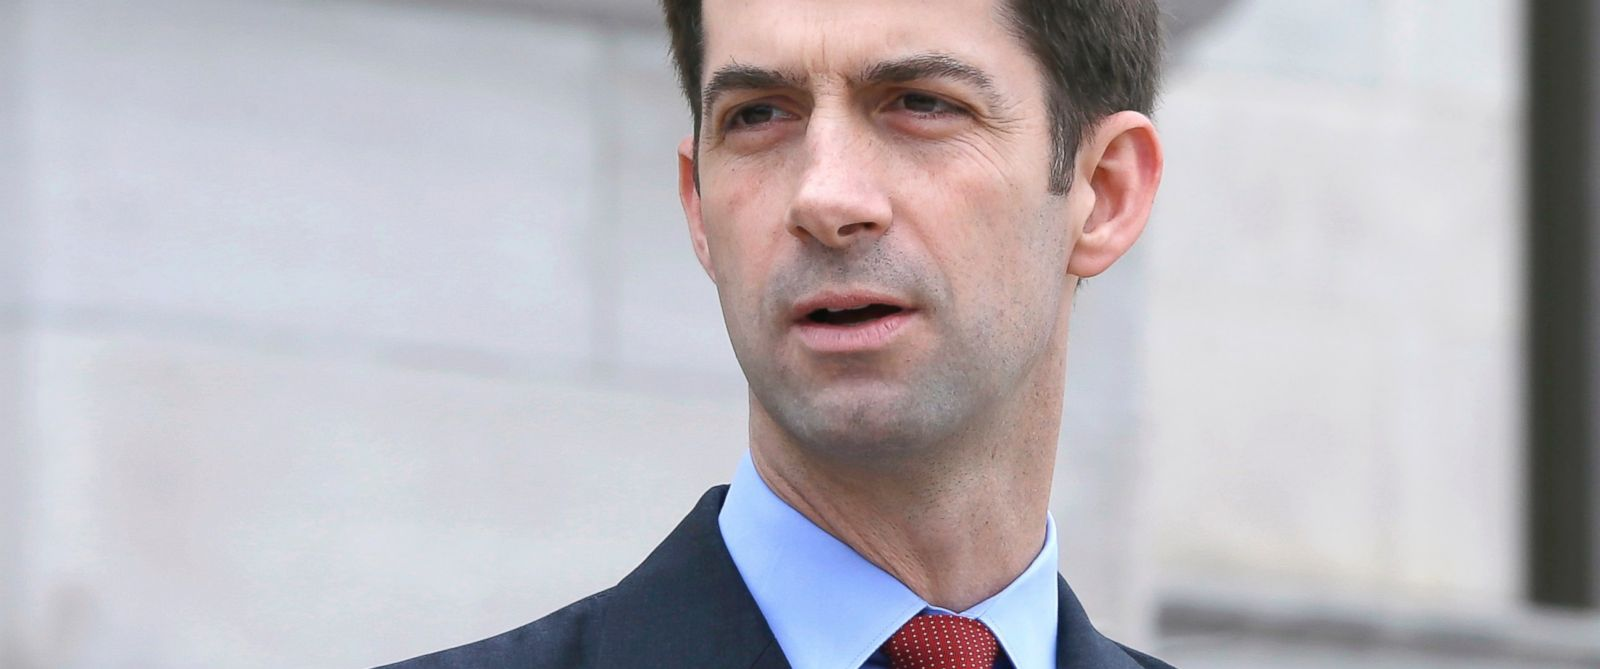 PHOTO: Sen. Tom Cotton, R-Ark., speaks in front of the Arkansas state Capitol in Little Rock, Ark., May 26, 2015.